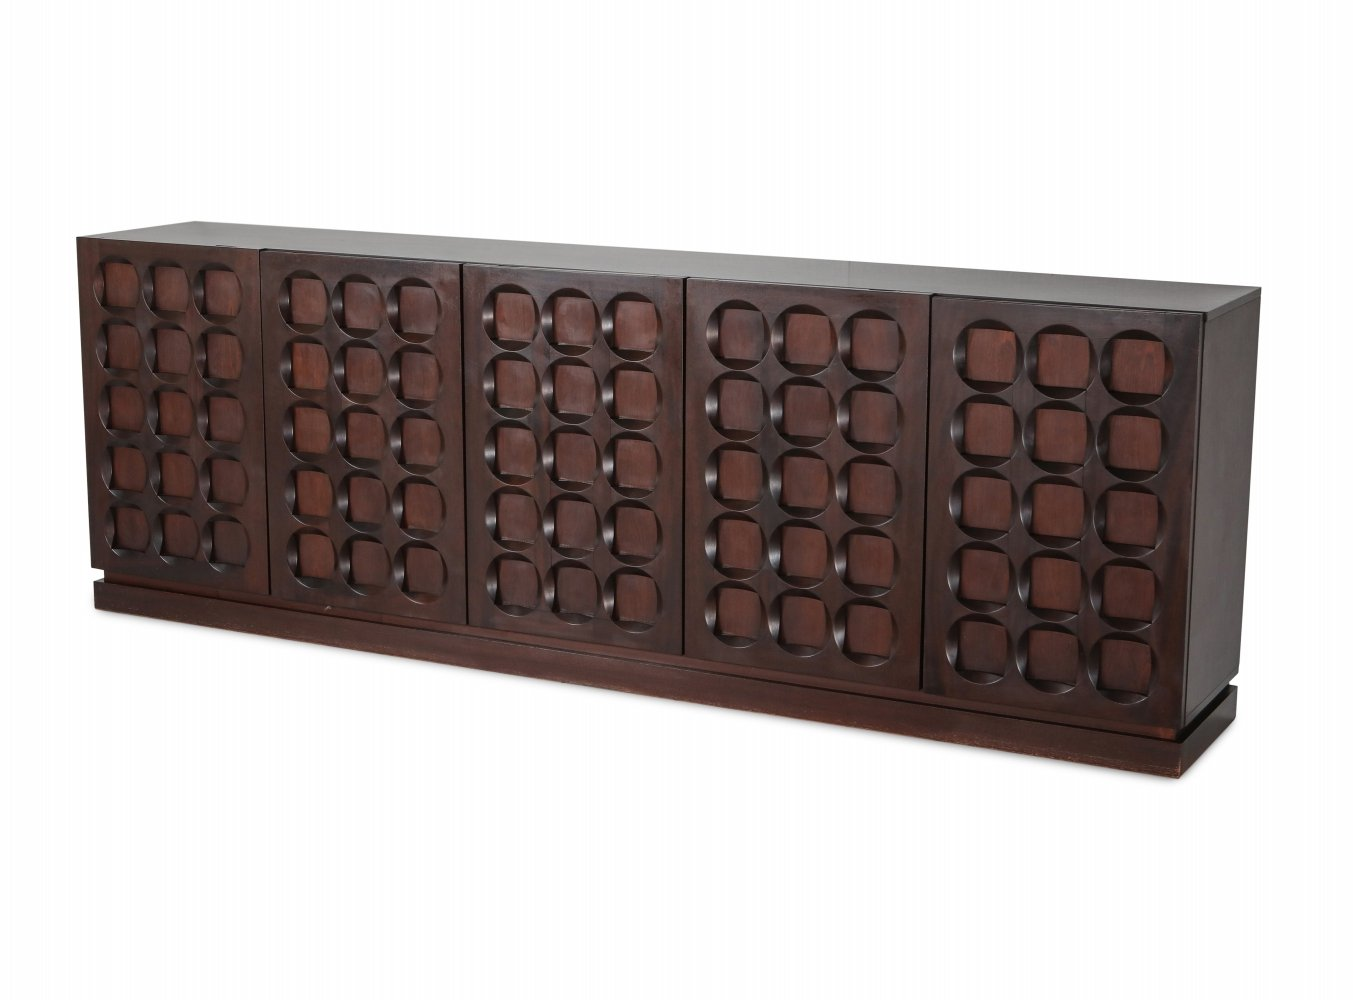 Mahogany credenza with geometrical patterned doors, 1970